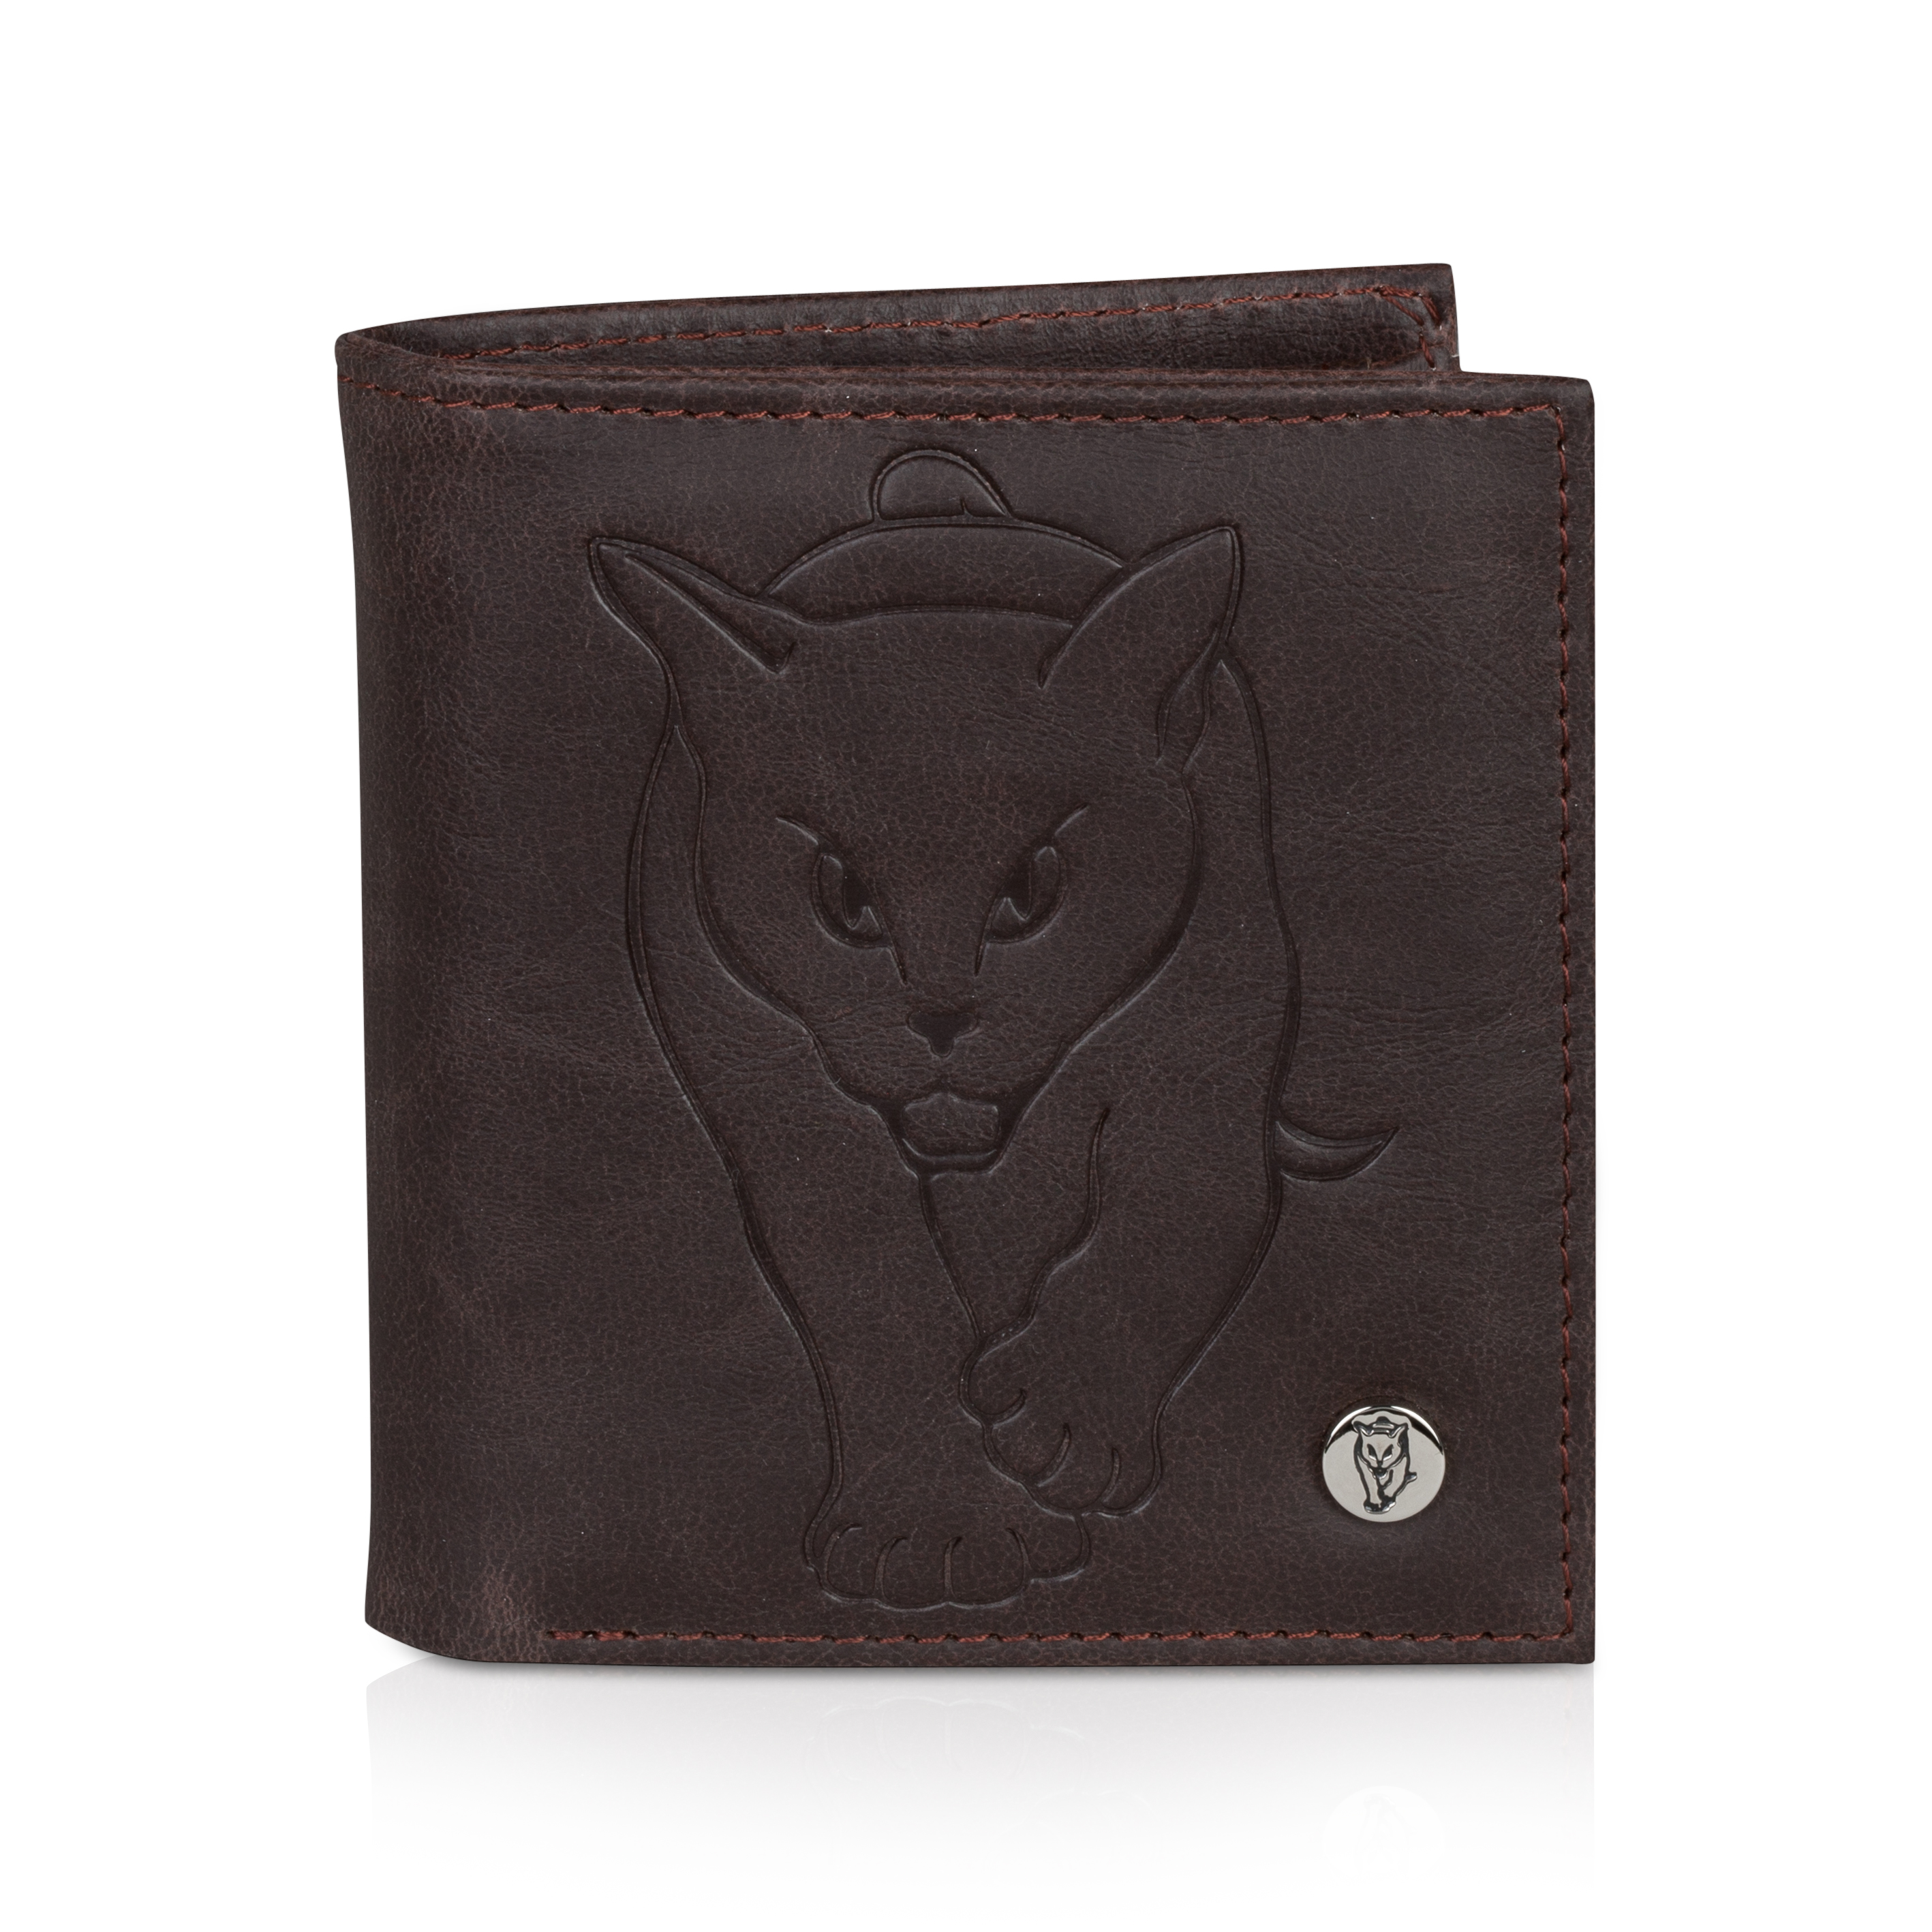 Sunderland Leather Wallet